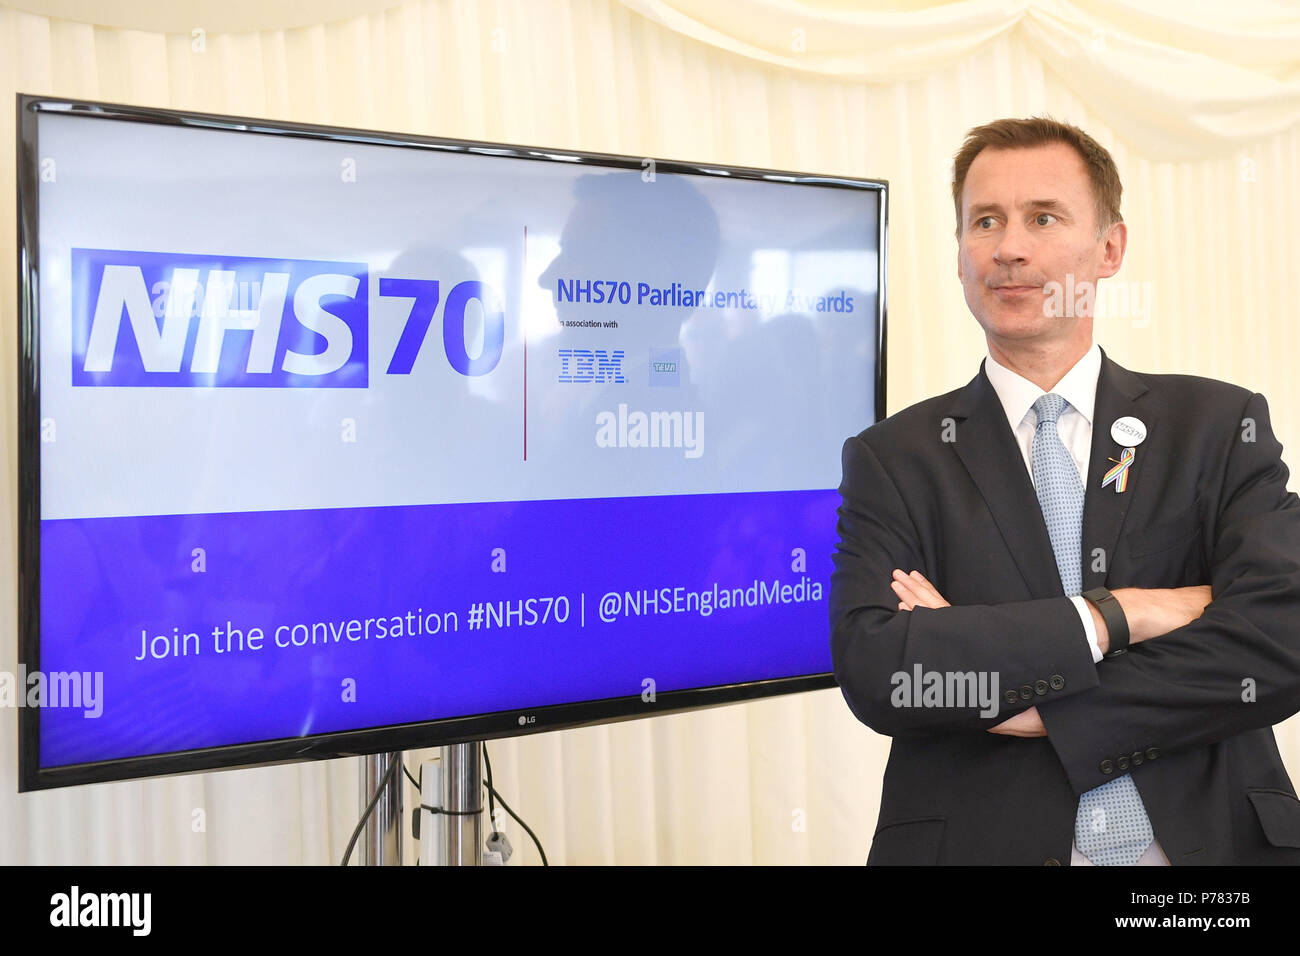 Health Secretary Jeremy Hunt attends the NHS70 parliamentary awards for the 70th anniversary of the NHS at the House of Commons in Westminster, London. - Stock Image